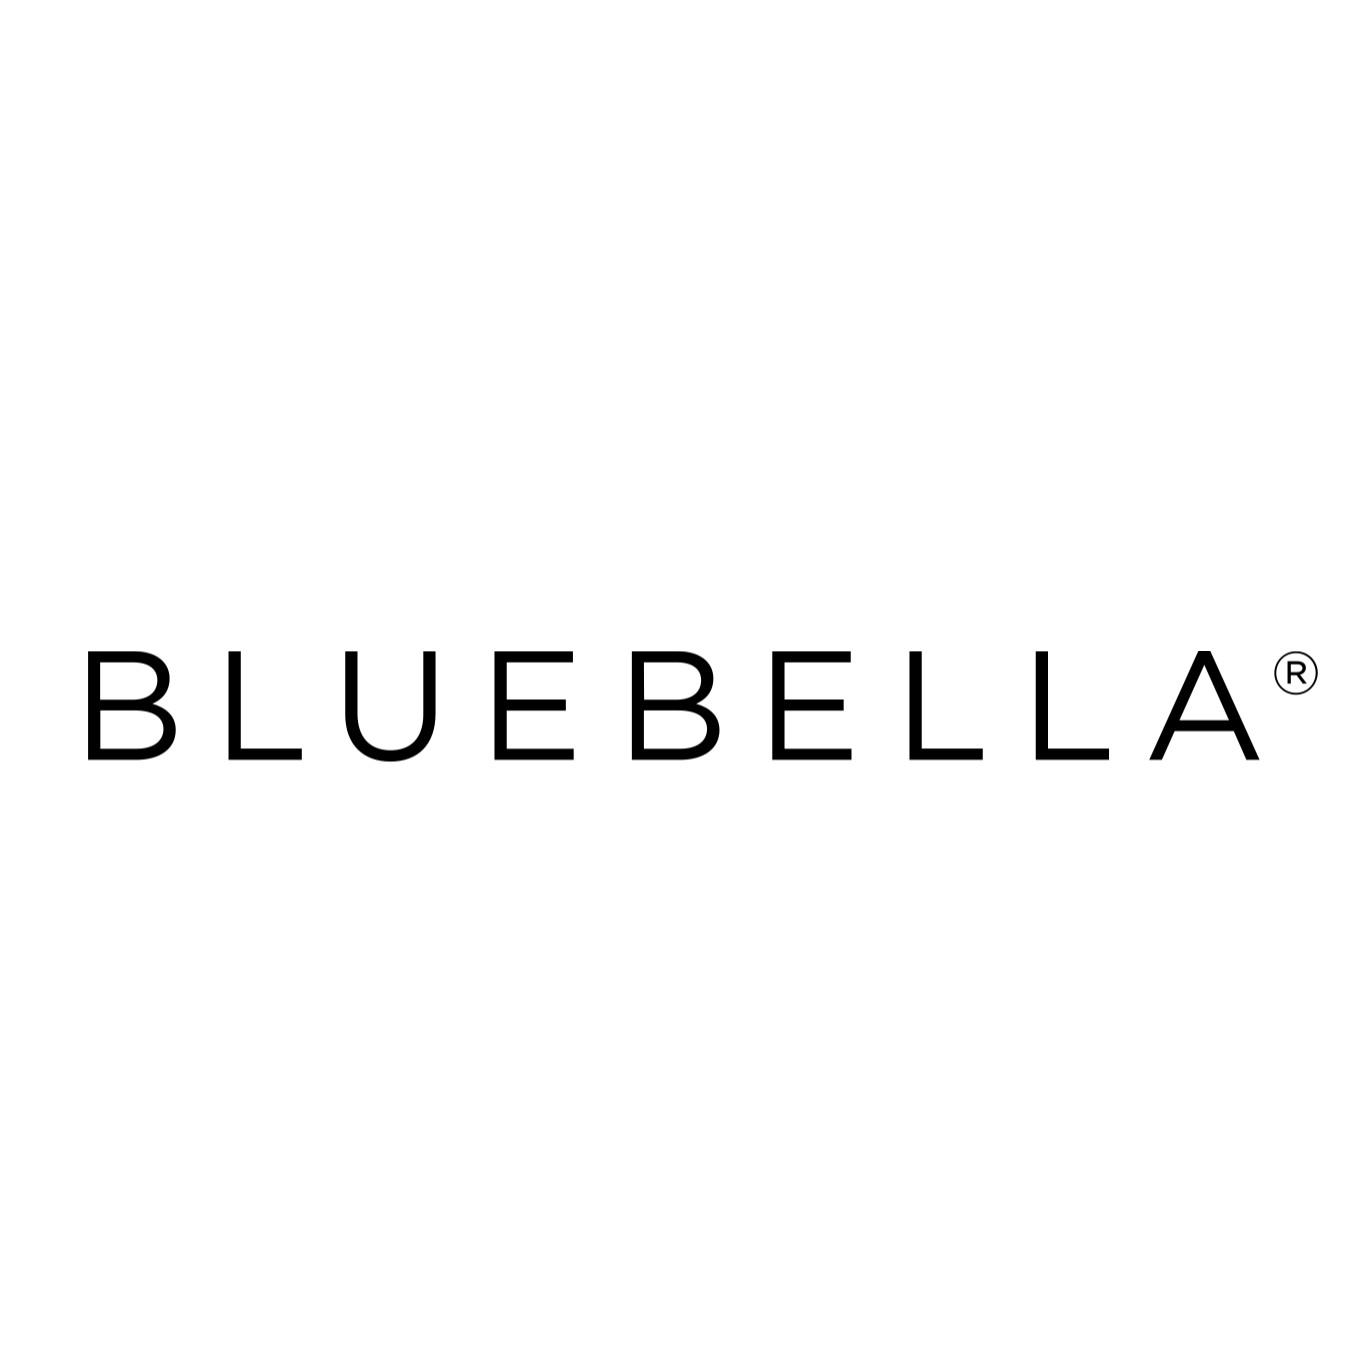 Bluebella US coupons and codes